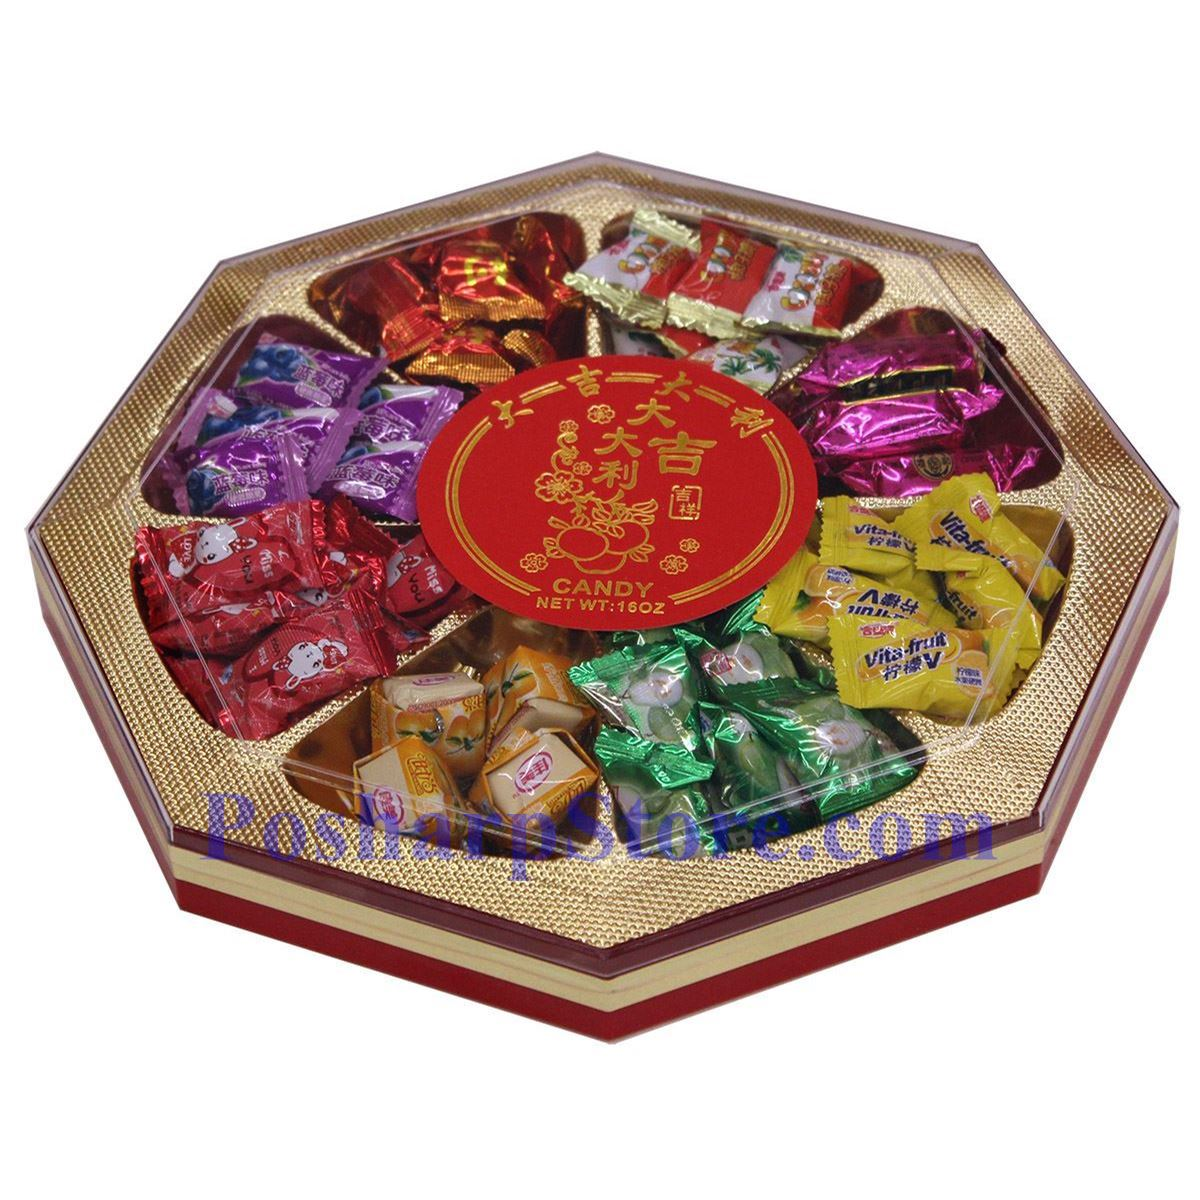 Picture for category Assorted Candies for Chinese New Year (Good Luck) 16 Oz